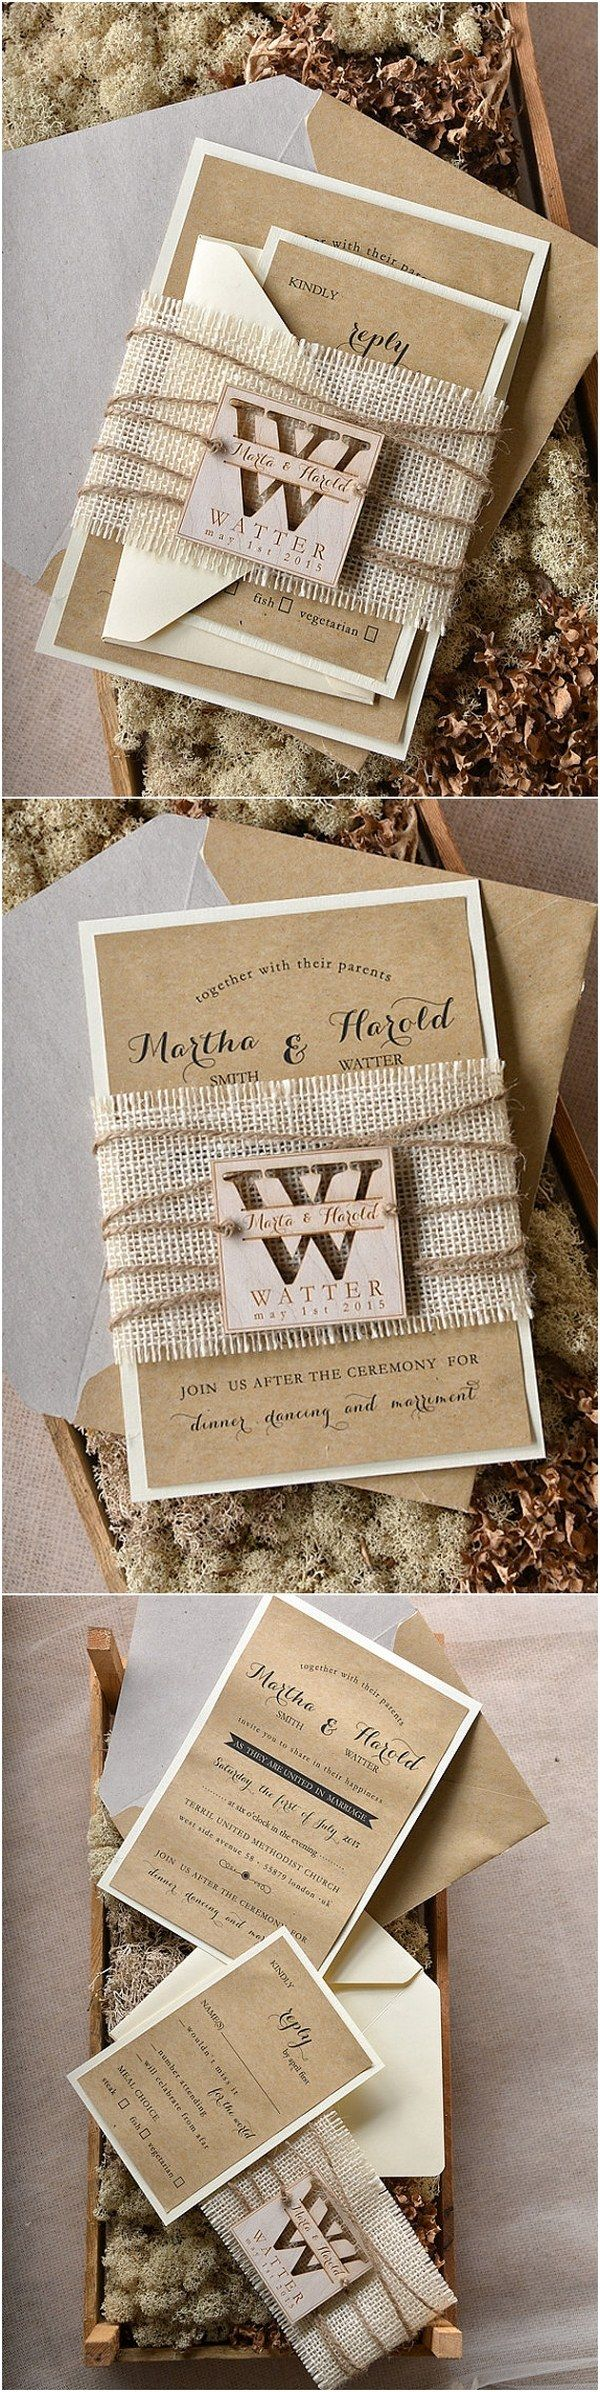 rustic country burlap wedding invitations 4LOVEPolkaDots rusticwedding